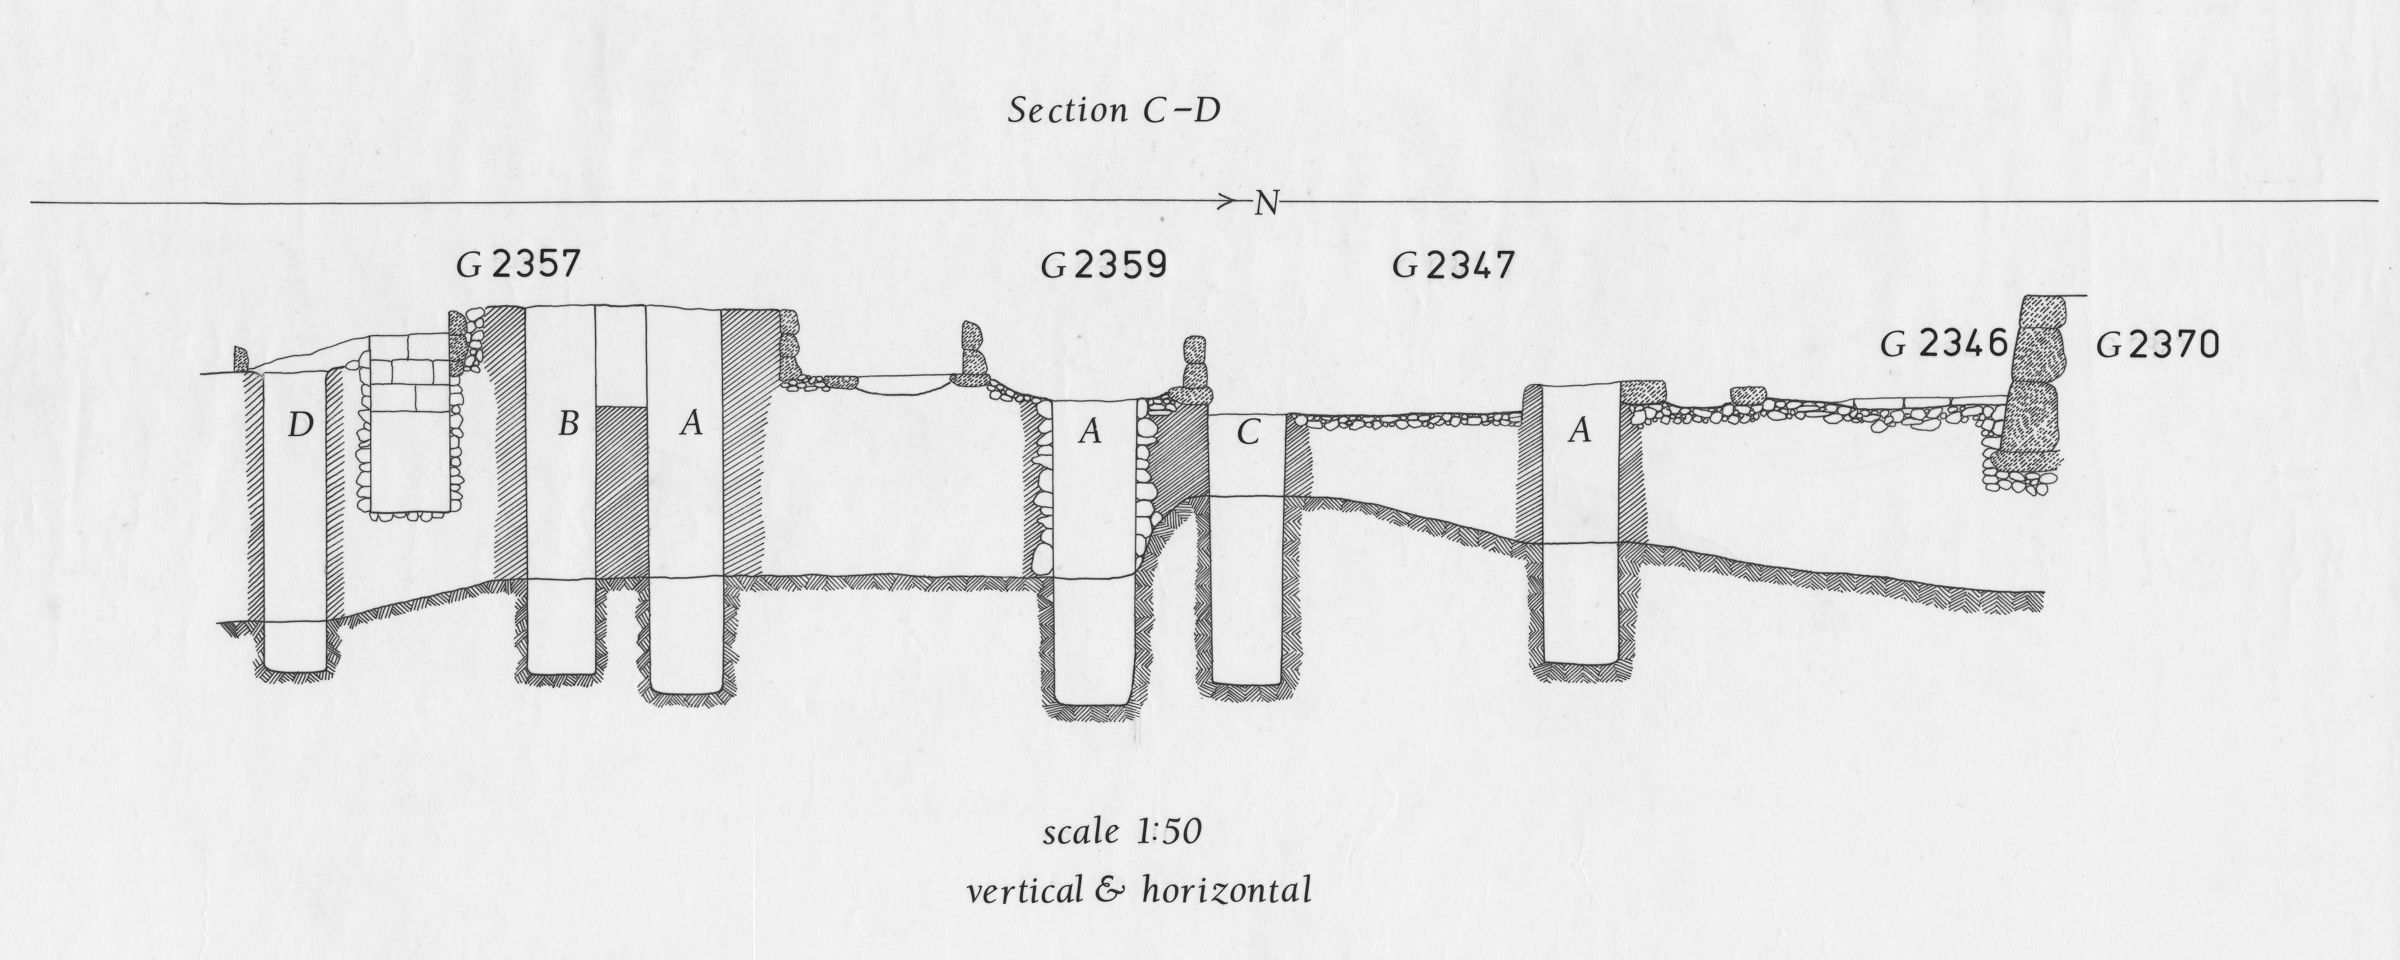 Maps and plans: Section of G 5524, G 5553, G 5561, G 5562